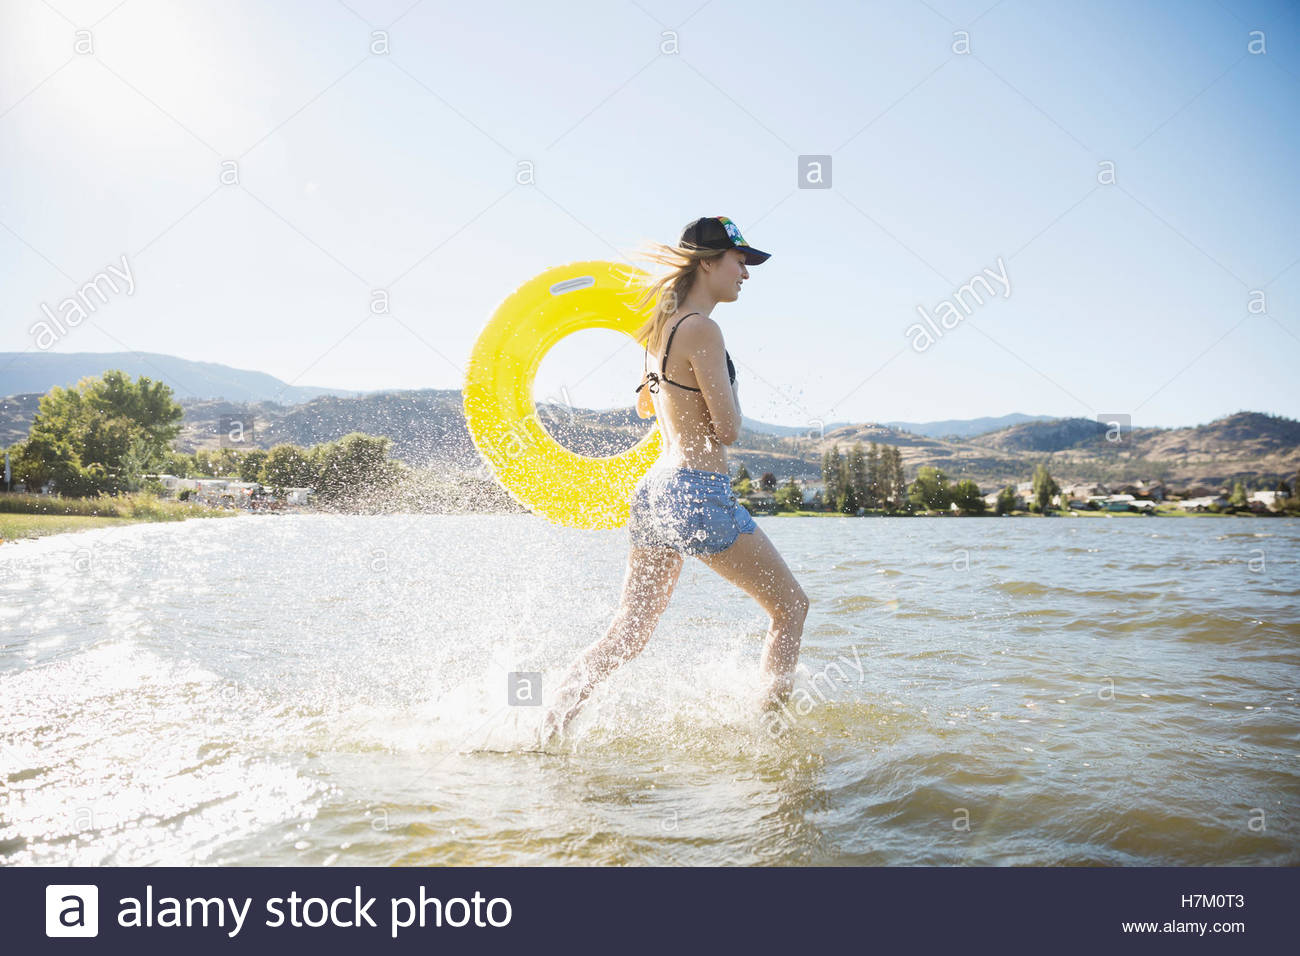 Smiling young woman in bikini running with inner tube in sunny summer lake - Stock Image